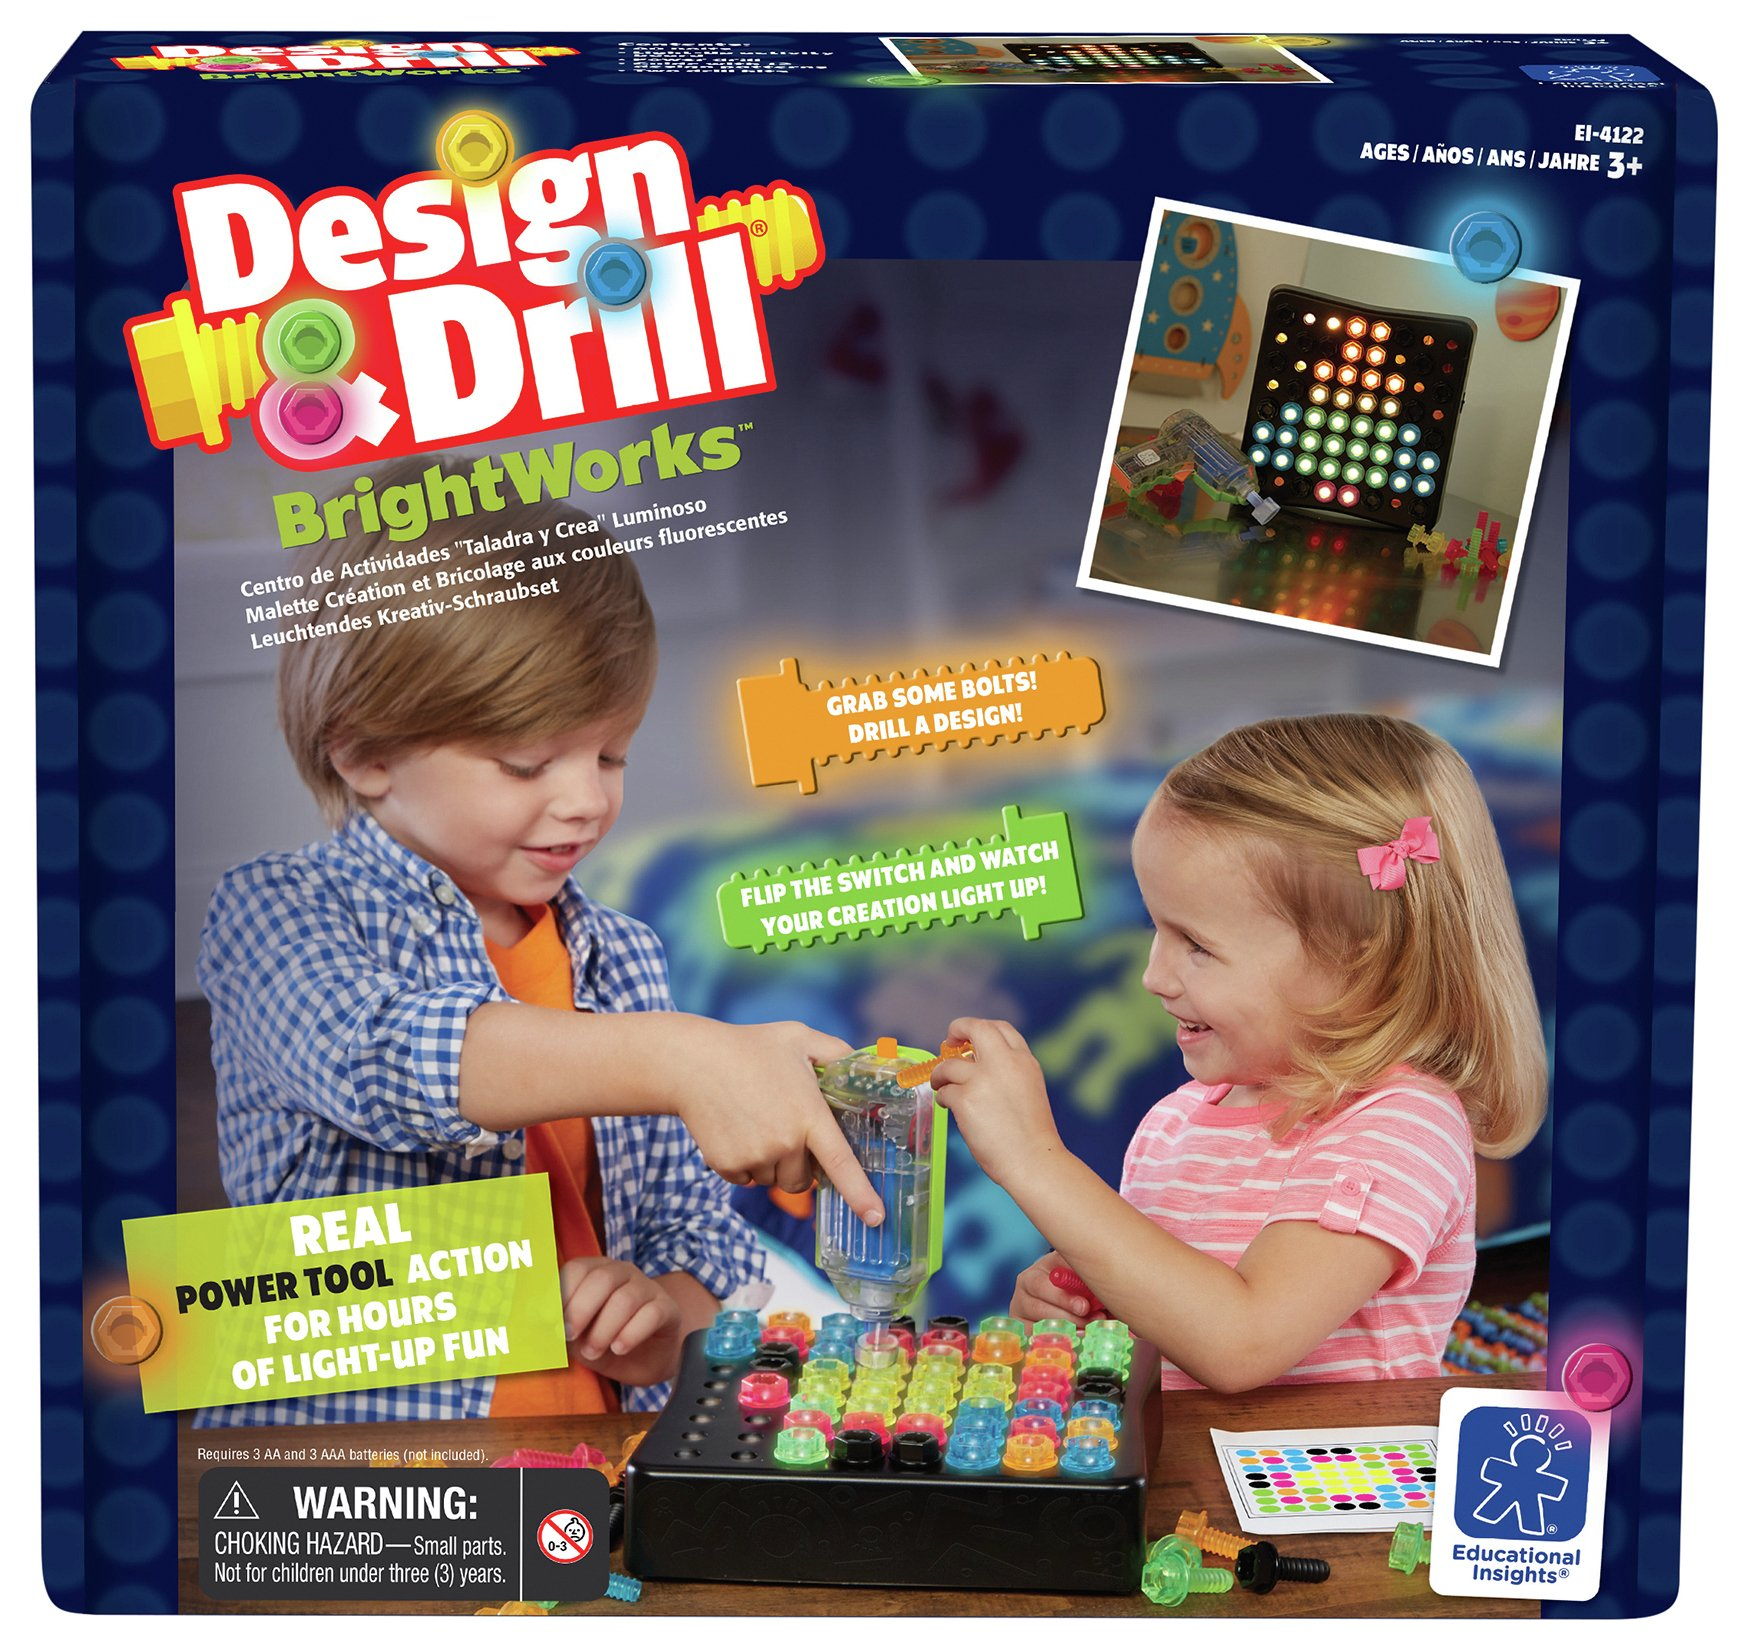 Design And Drill Brightworks. Review